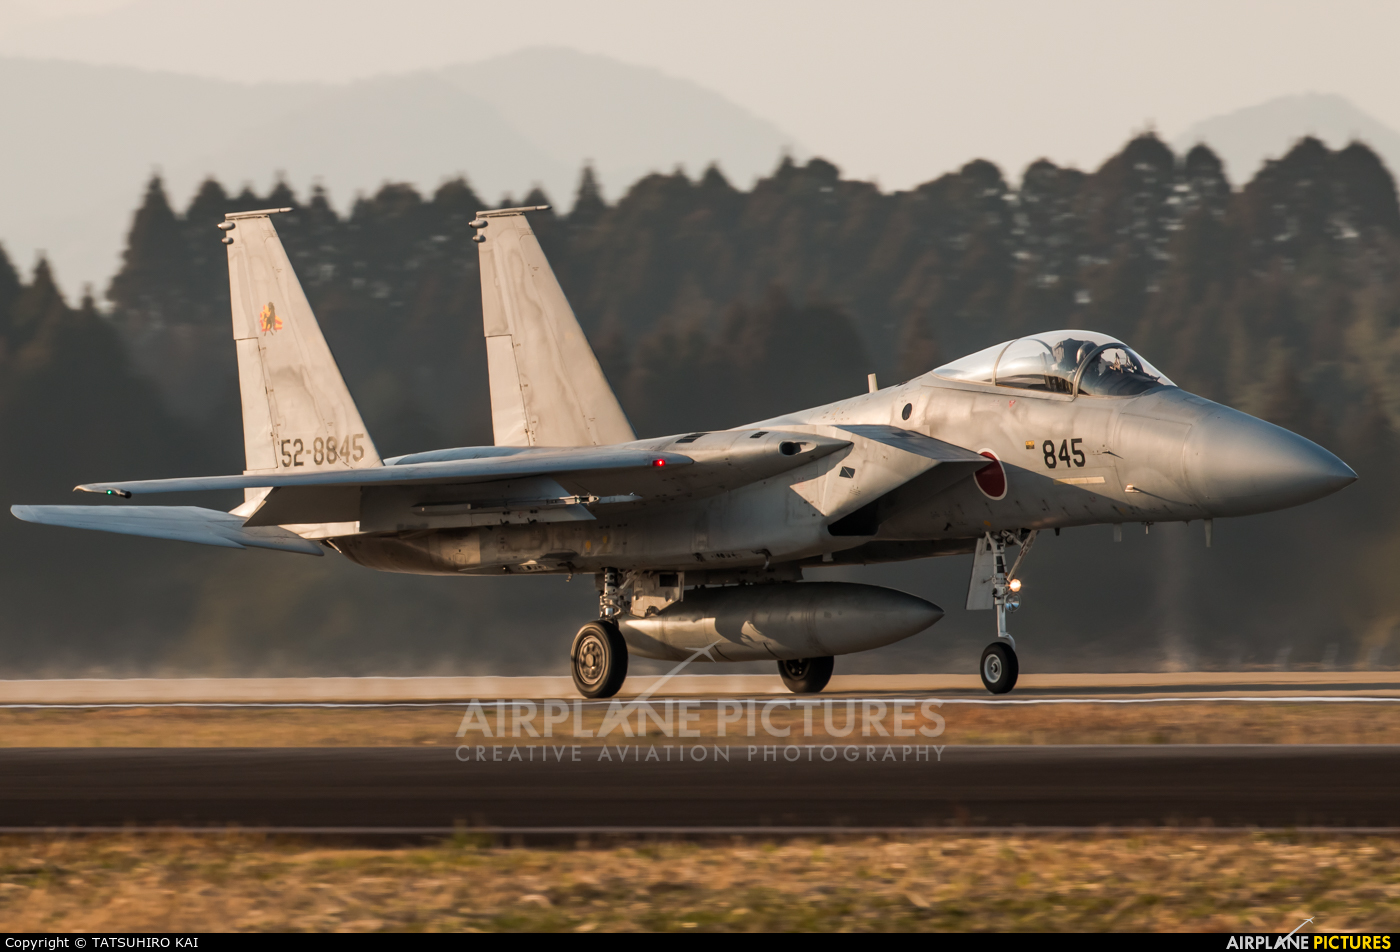 Japan - Air Self Defence Force 52-8845 aircraft at Nyutabaru AB